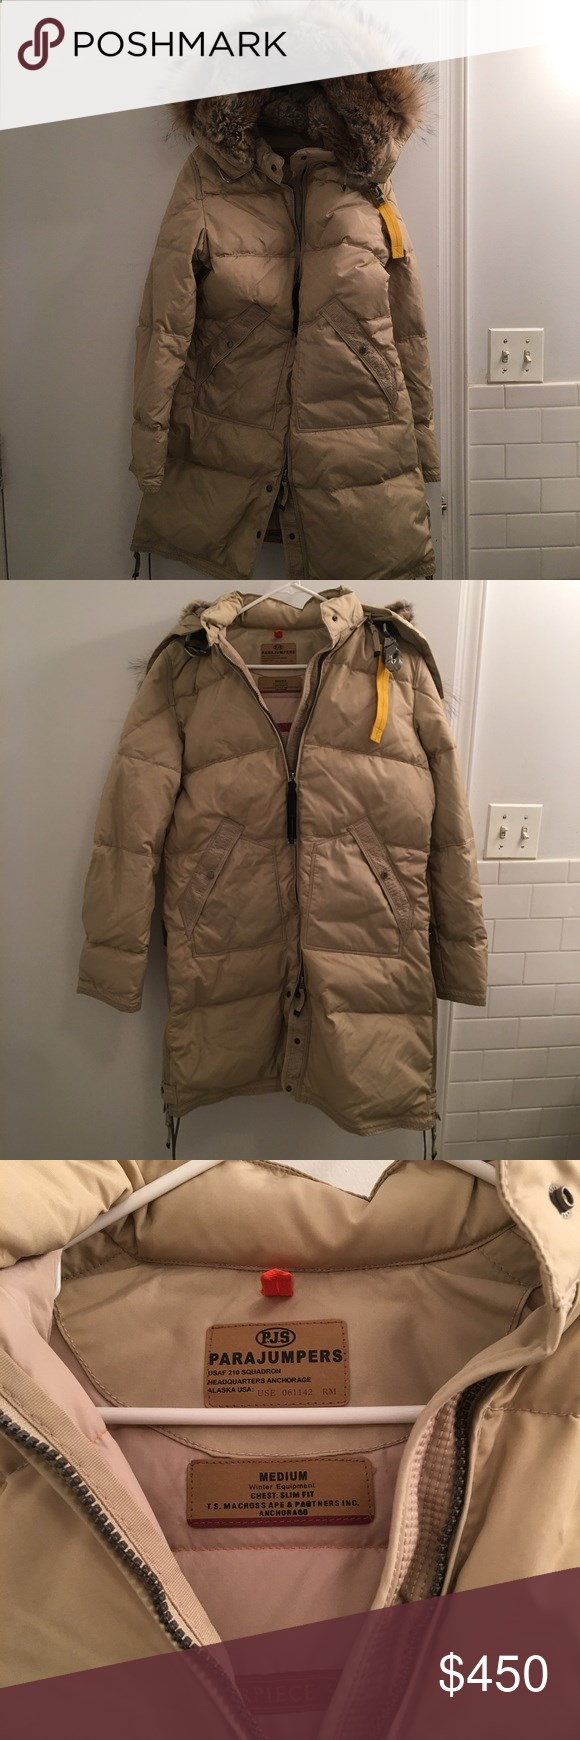 b9c0c71f sweden parajumpers woman jackets parkas knitwear pjs 31118 91ce5; new  zealand parajumpers coat masterpiece medium great coat.. worn once or twice  at most